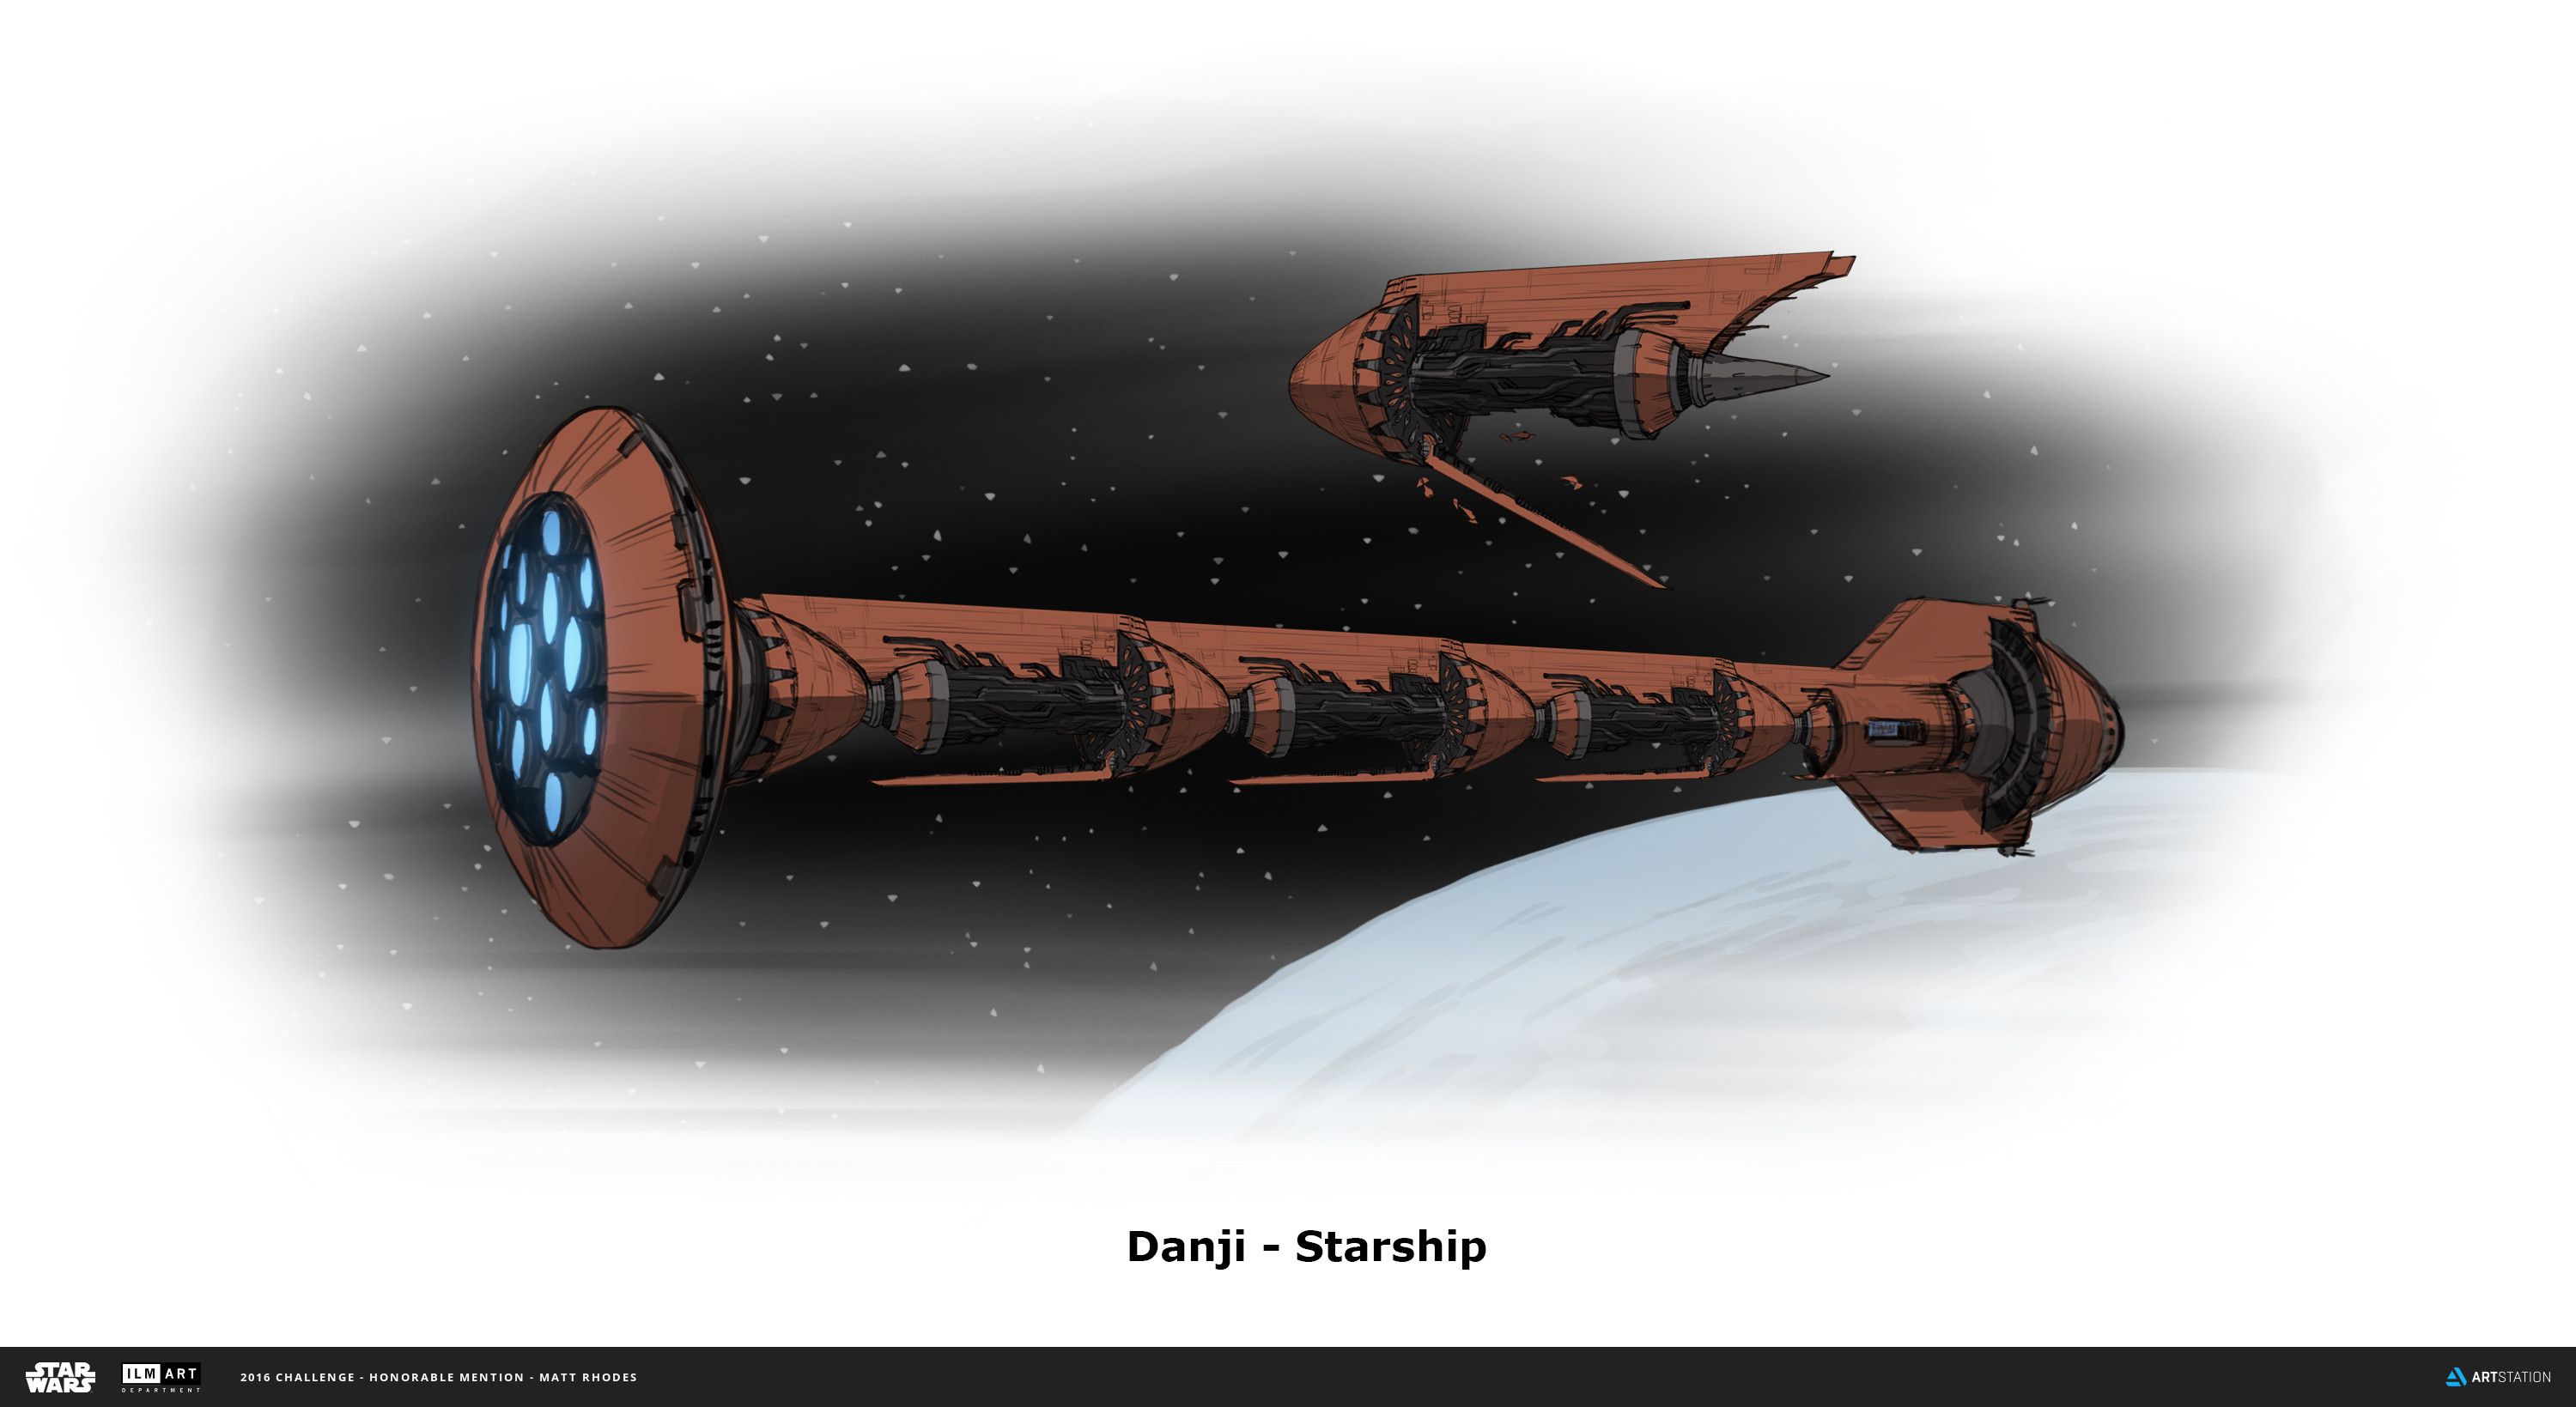 The Starship is made up of Carrier ships, with a head and propulsion at the front and back. It's like a contained fleet, able to house as many Carriers as needed. This shape is meant to reflect a Hookah on its side.